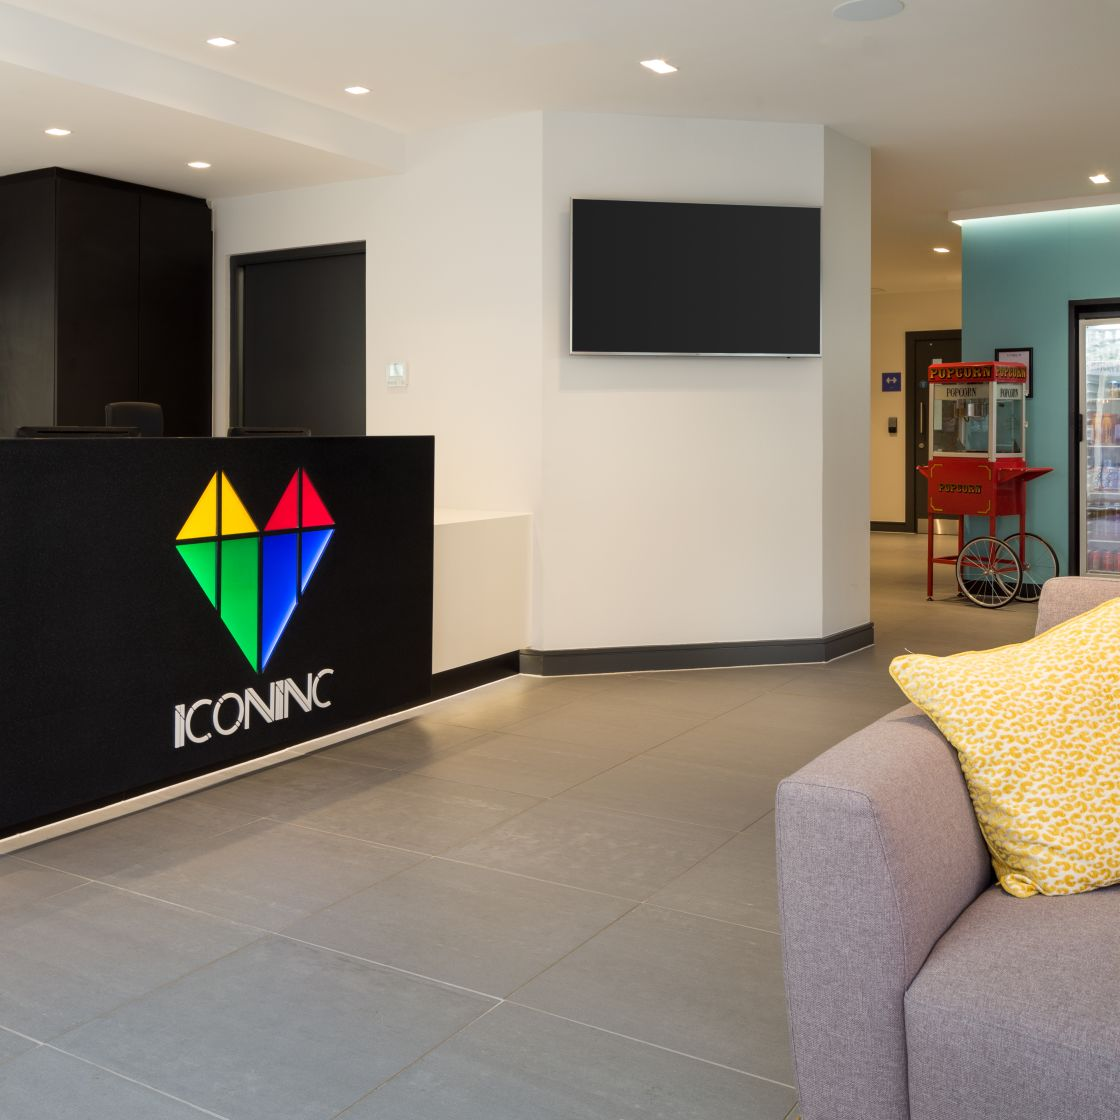 24 hour reception lounge at IconInc, The Ascent. Student Accommodation in Liverpool